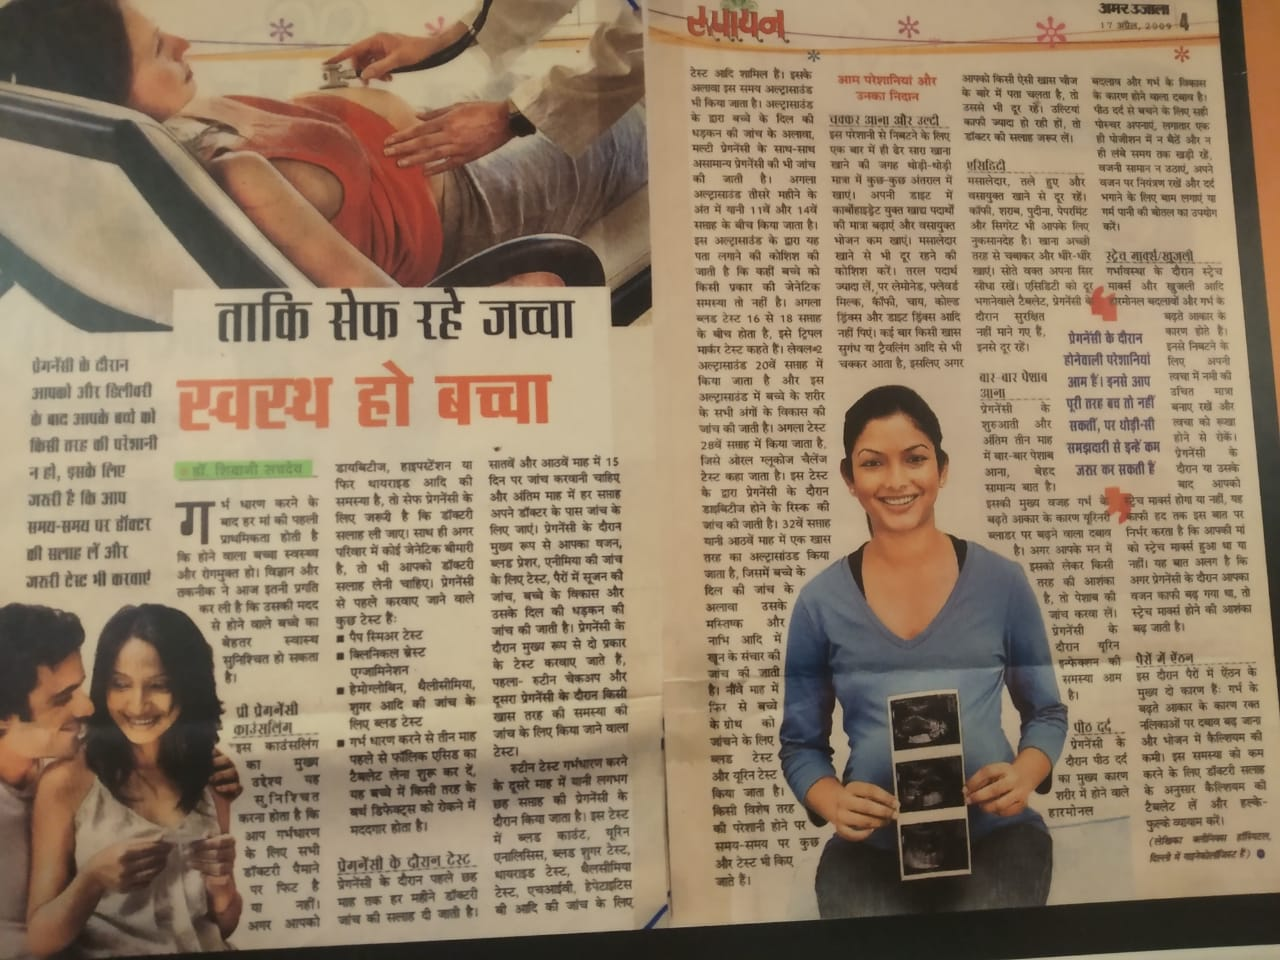 Dr Shivani Sachdev Gour Tips for Healthy New Born Baby in AMAR UJALA